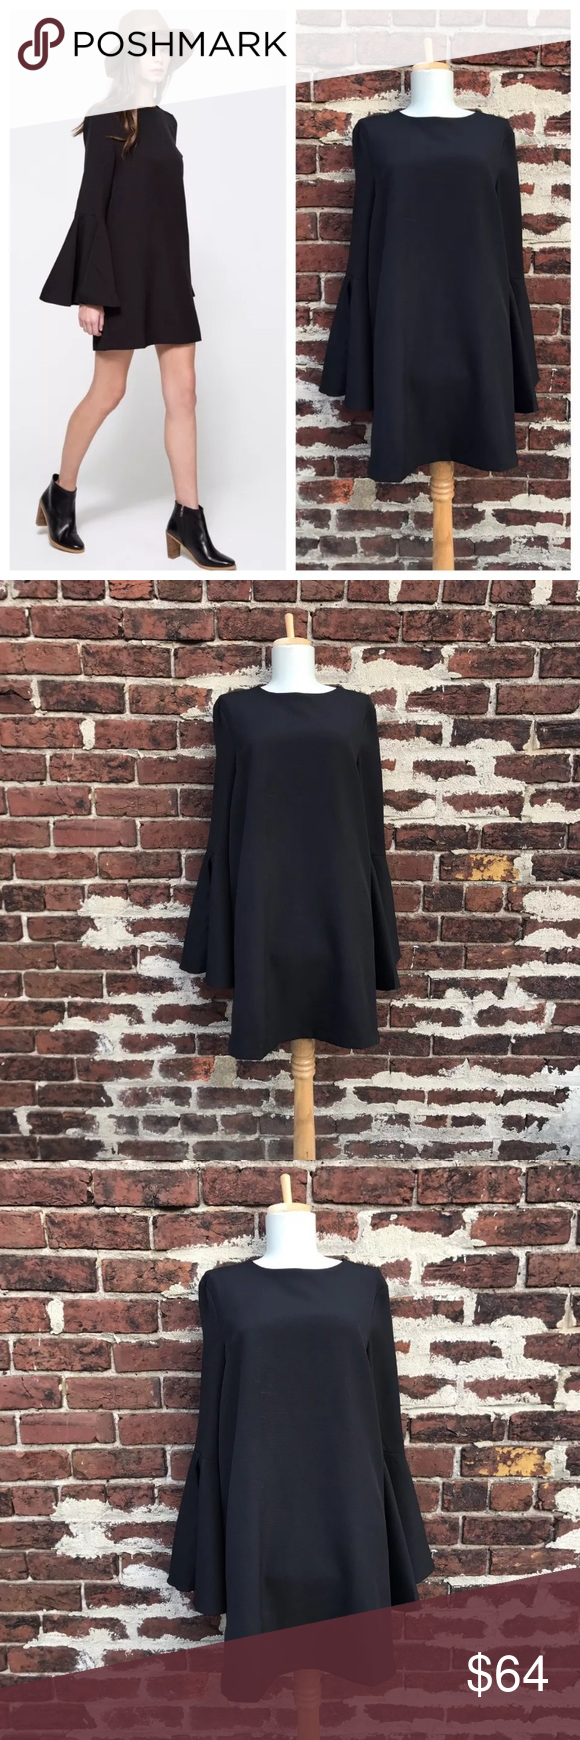 Need Supply Co M Farrow Bell Sleeve Magda Dress You're bidding on a beautiful mini dress with Bell sleeves by Farrow! Sold at Need Supply Co.   Size medium  Polyester / spandex with polyester lining  Great, gently preloved condition! Need Supply Co Dresses Mini